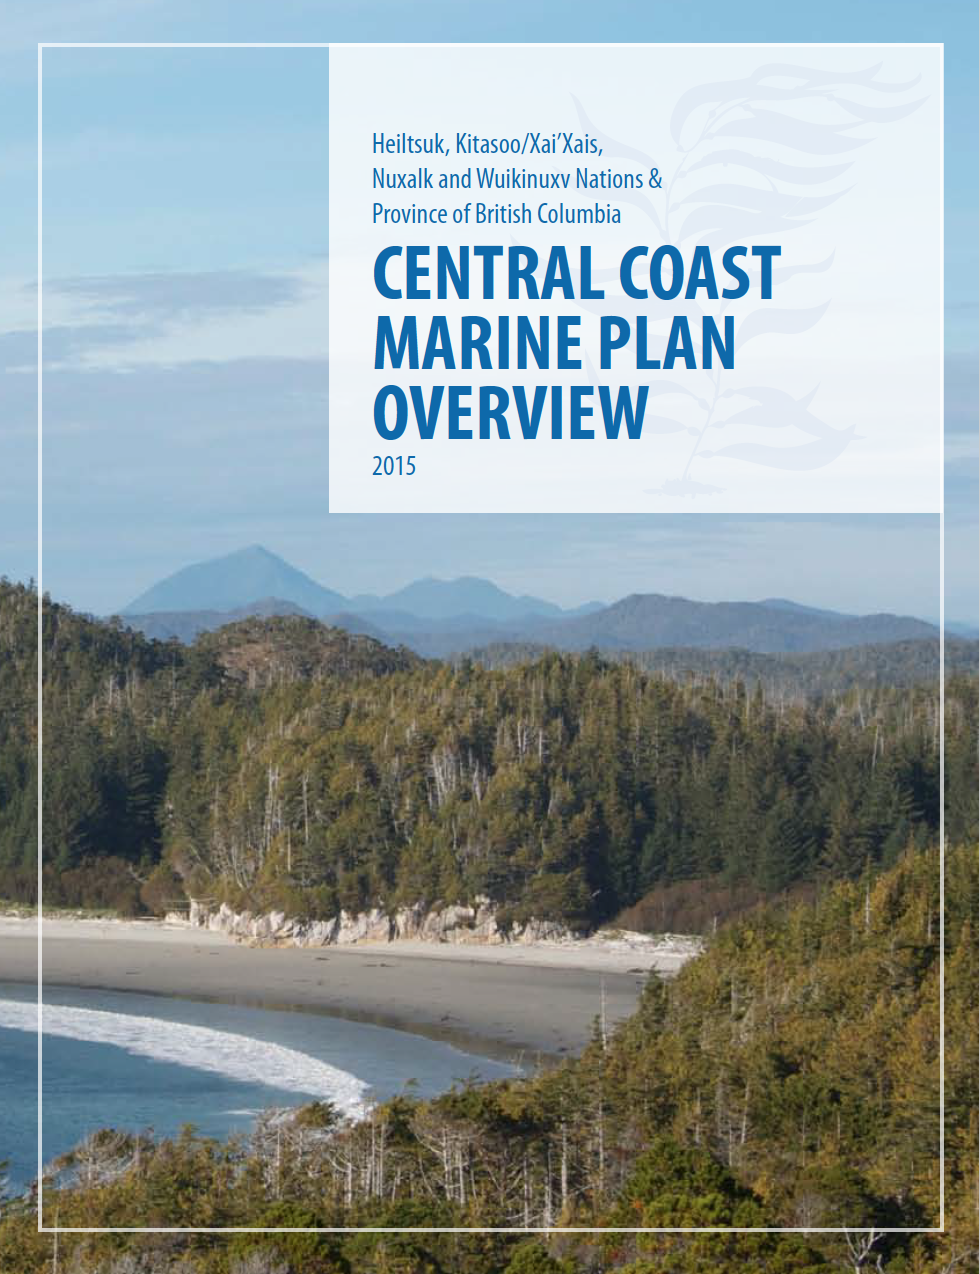 Central Coast Marine Plan Overview